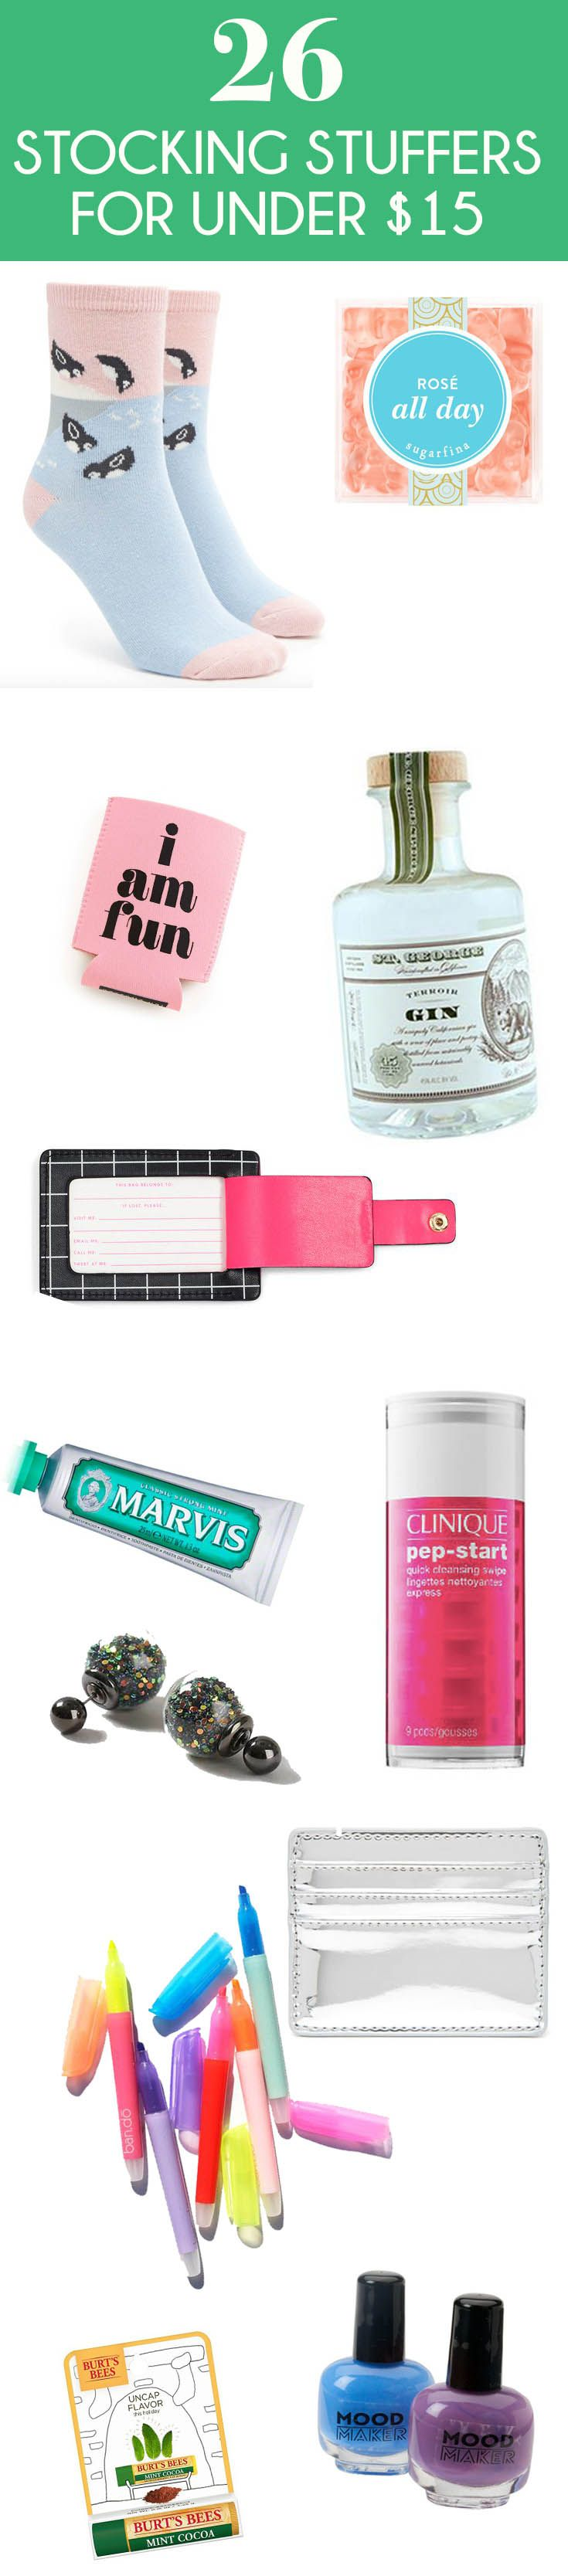 These 26 stocking stuffers for women will make every girl on your list extra happy. The best part? All these gifts are under $15 dollars and super cute.